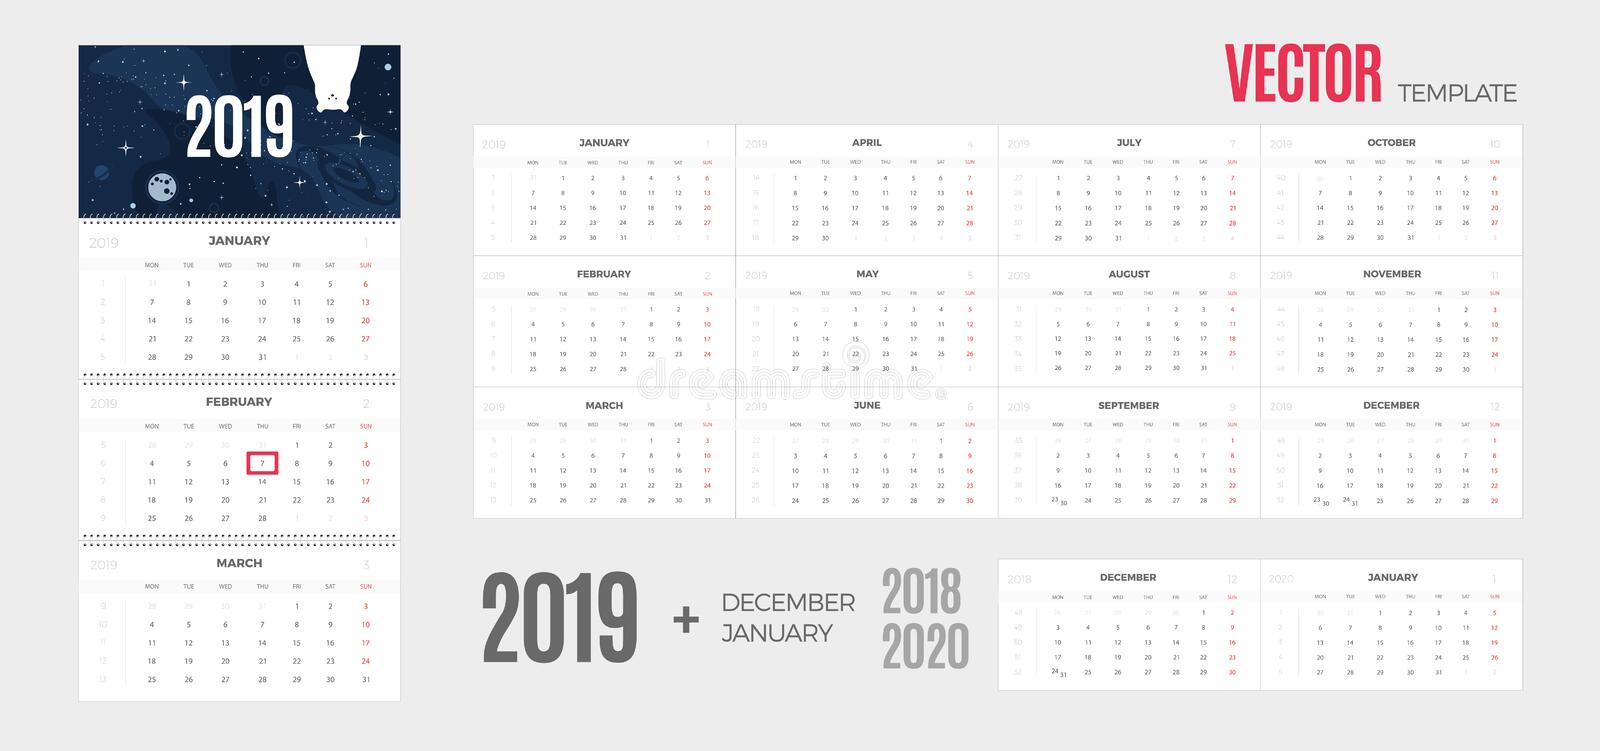 2019 Calendar. Vector quarterly template ready for print with fun space background and 3 month pages for wall. vector illustration